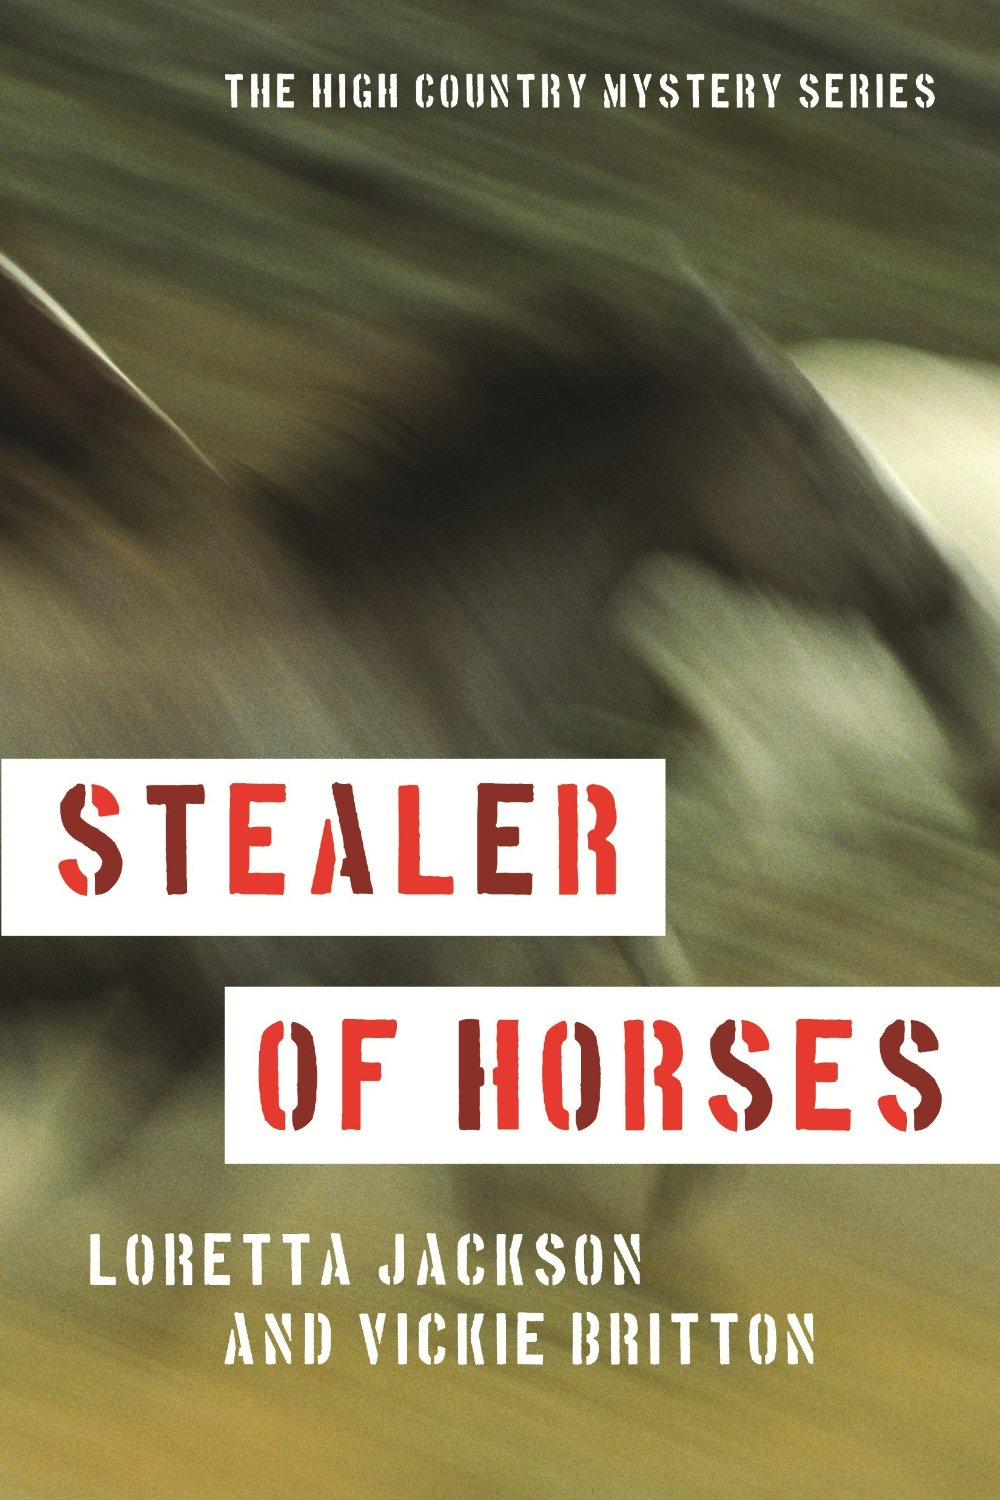 READ STEALER OF HORSES on Kindle or in Paperback